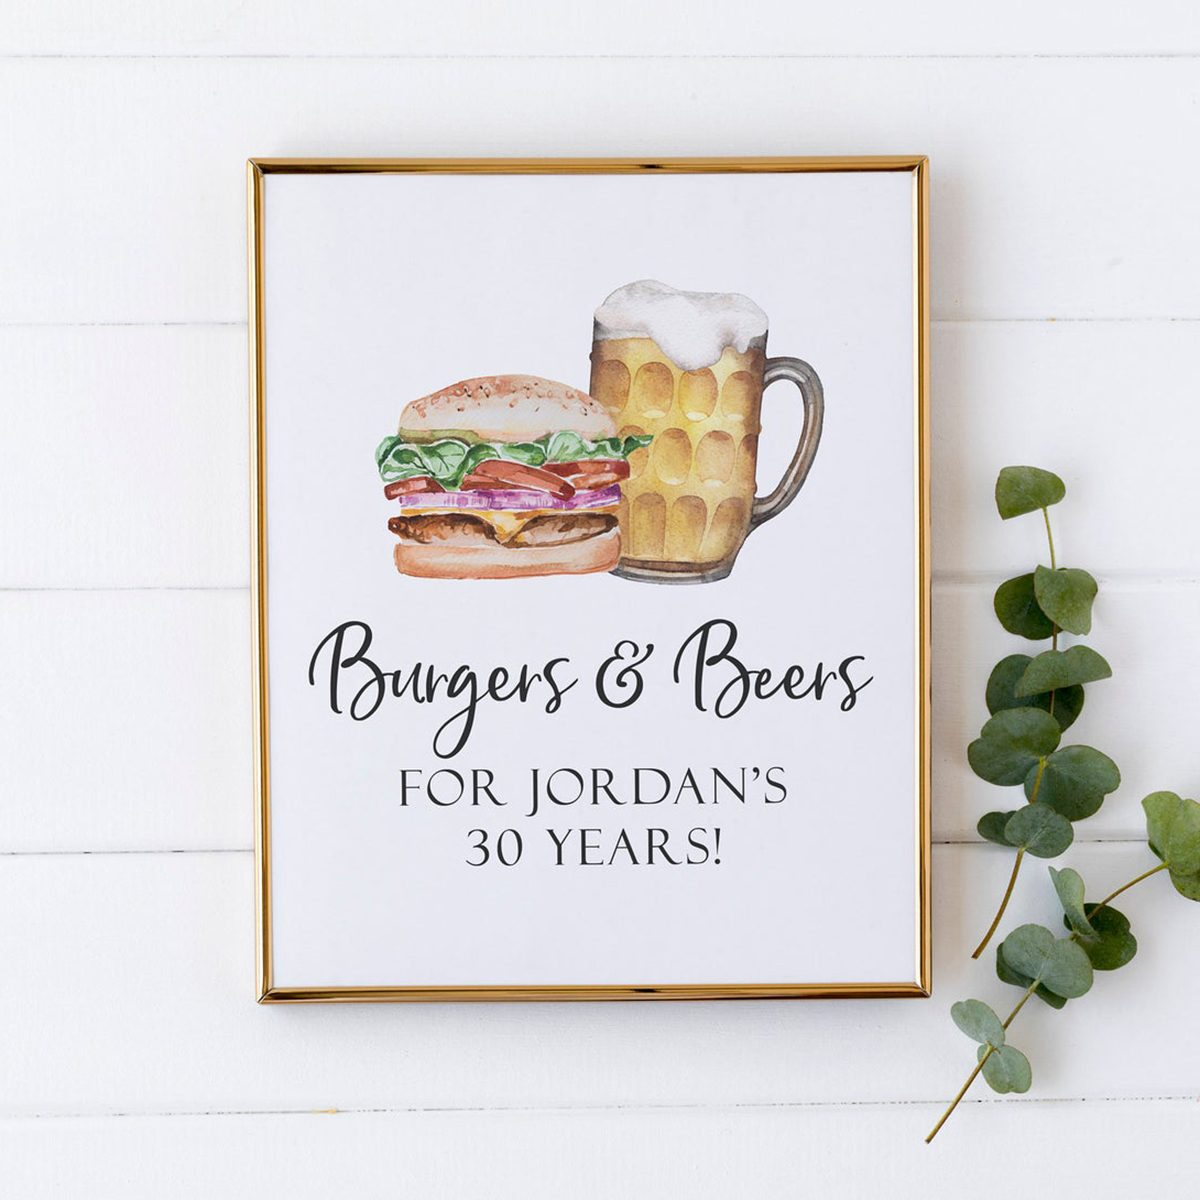 BBQ Birthday Party Decorations - Burgers and Beers Birthday Party Sign - Beers for 30 Years - 30th Birthday Party Decorations - Printable